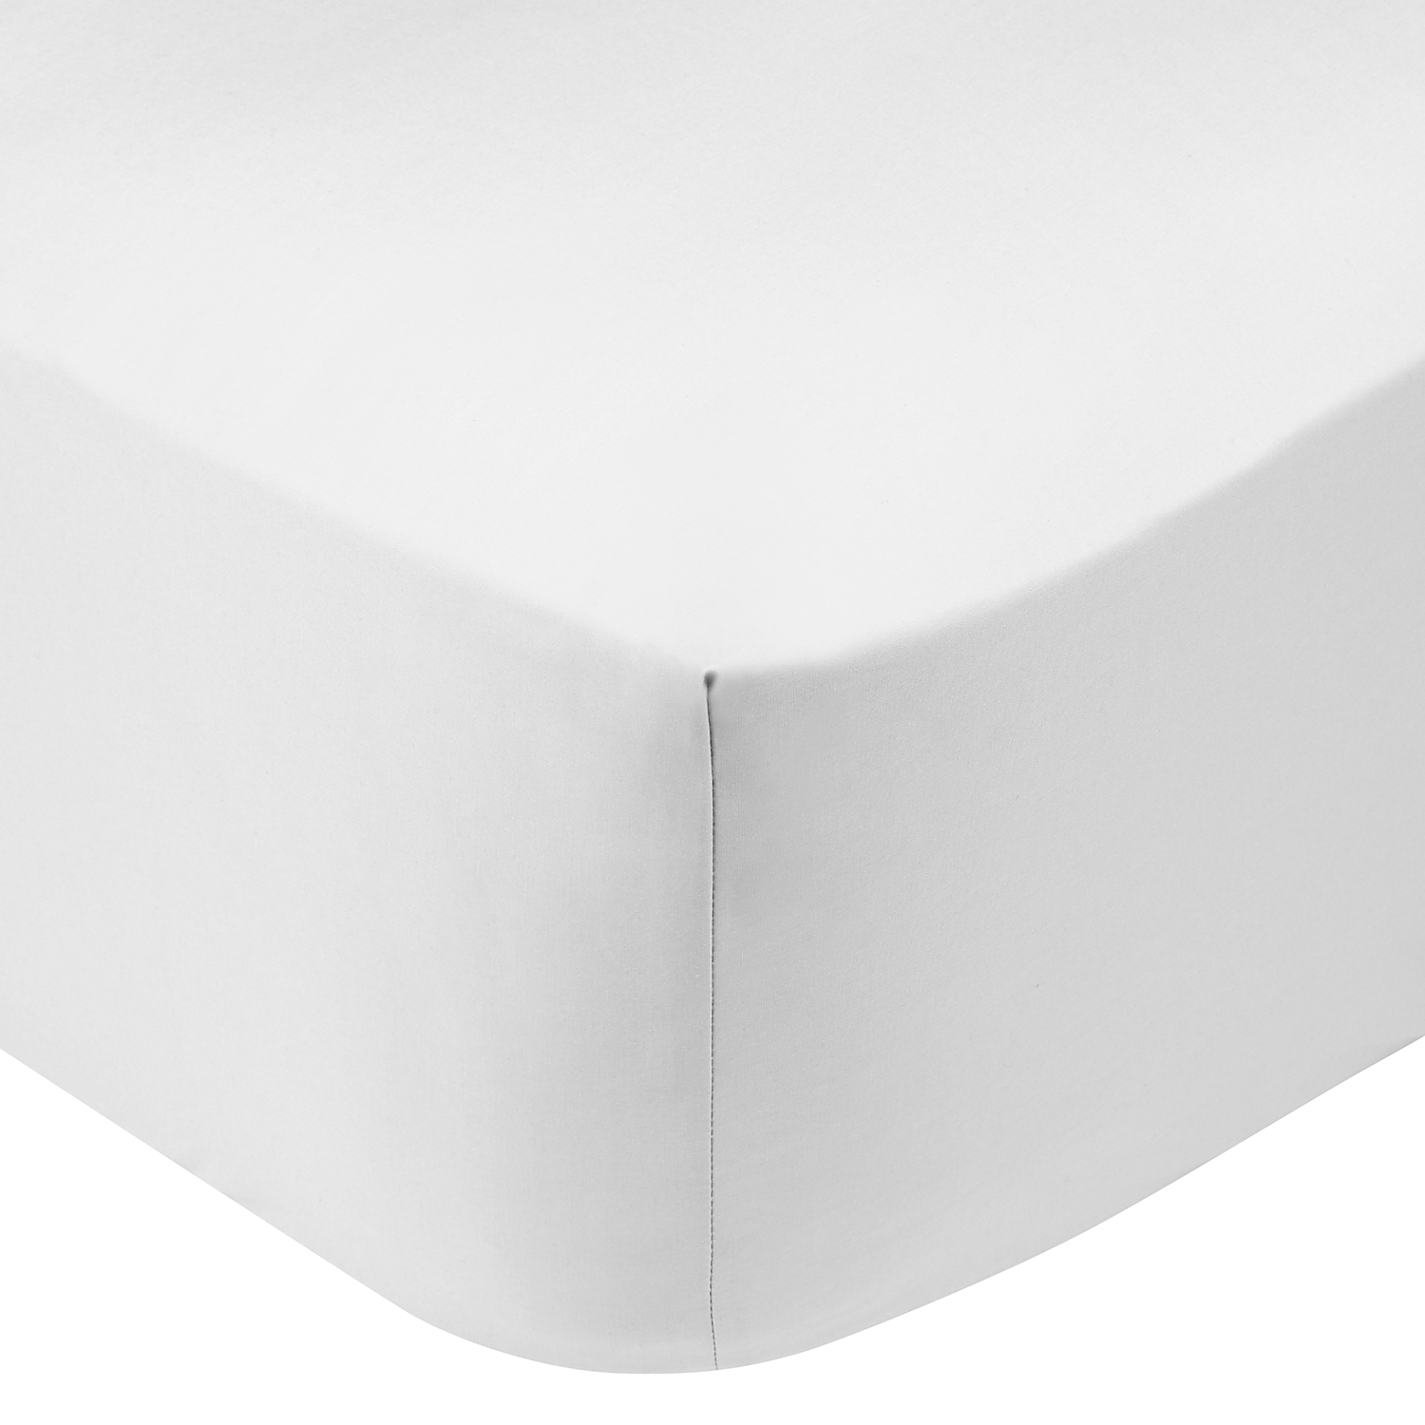 IDEAhome Jersey Knit Twin XL Size Fitted Bottom Sheets, 39'' X 80'' with 14'' Deep Pocket, Ideal for Twin XL Bed Mattress or Split King Adjustable Bed, Hypoallergenic, White, Pack of 1